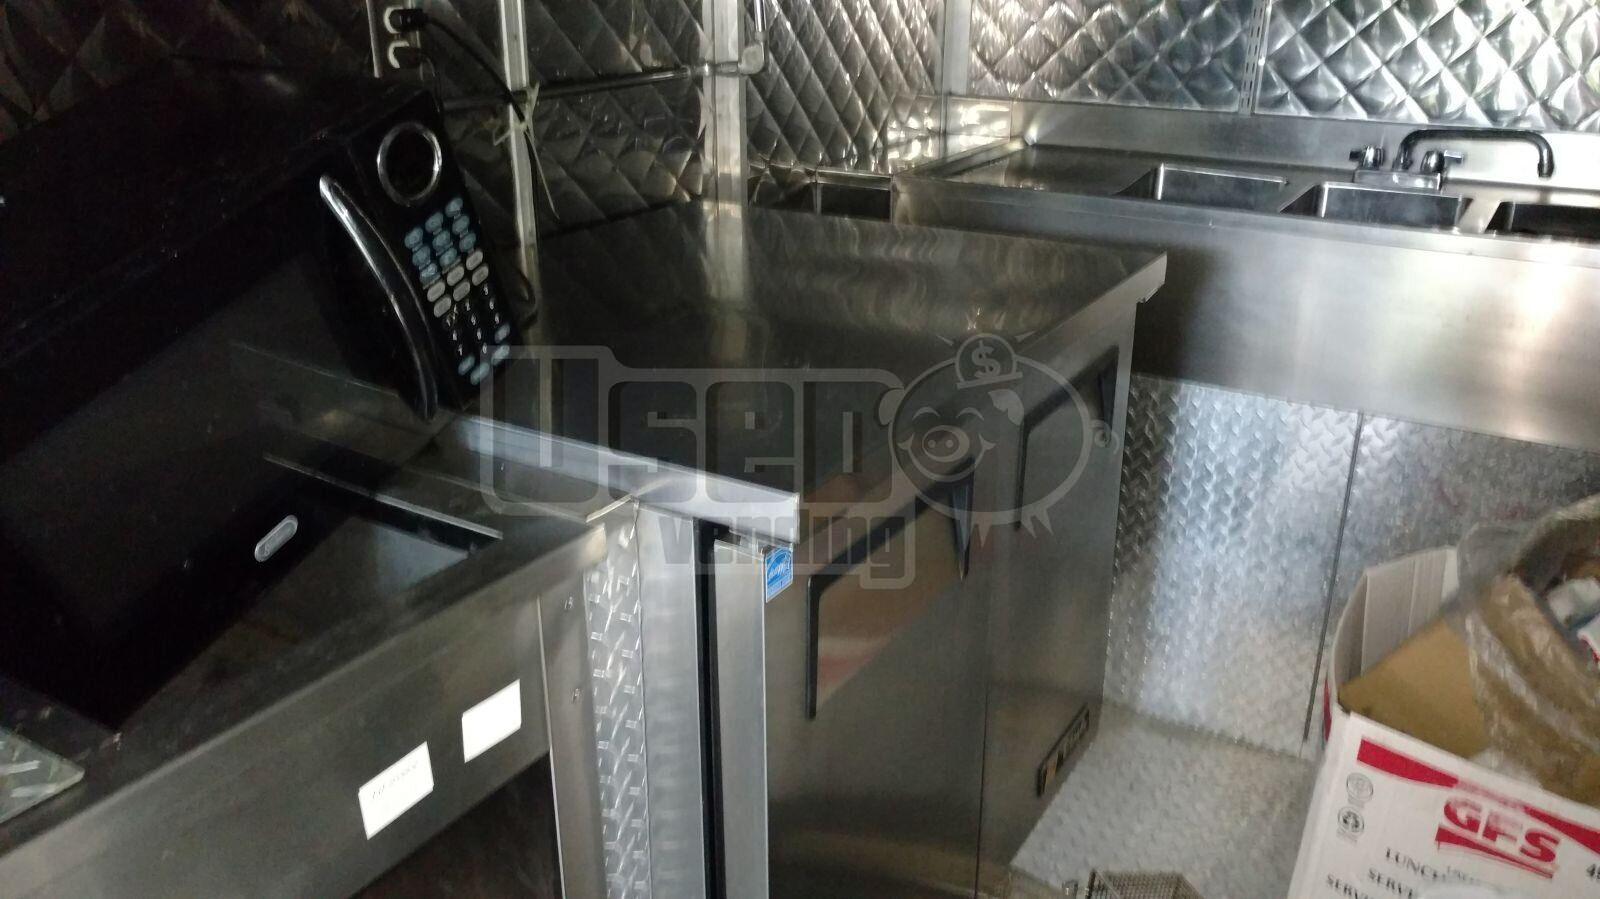 2003 P42 Workhorse All-purpose Food Truck Generator Florida Gas Engine for Sale - 6